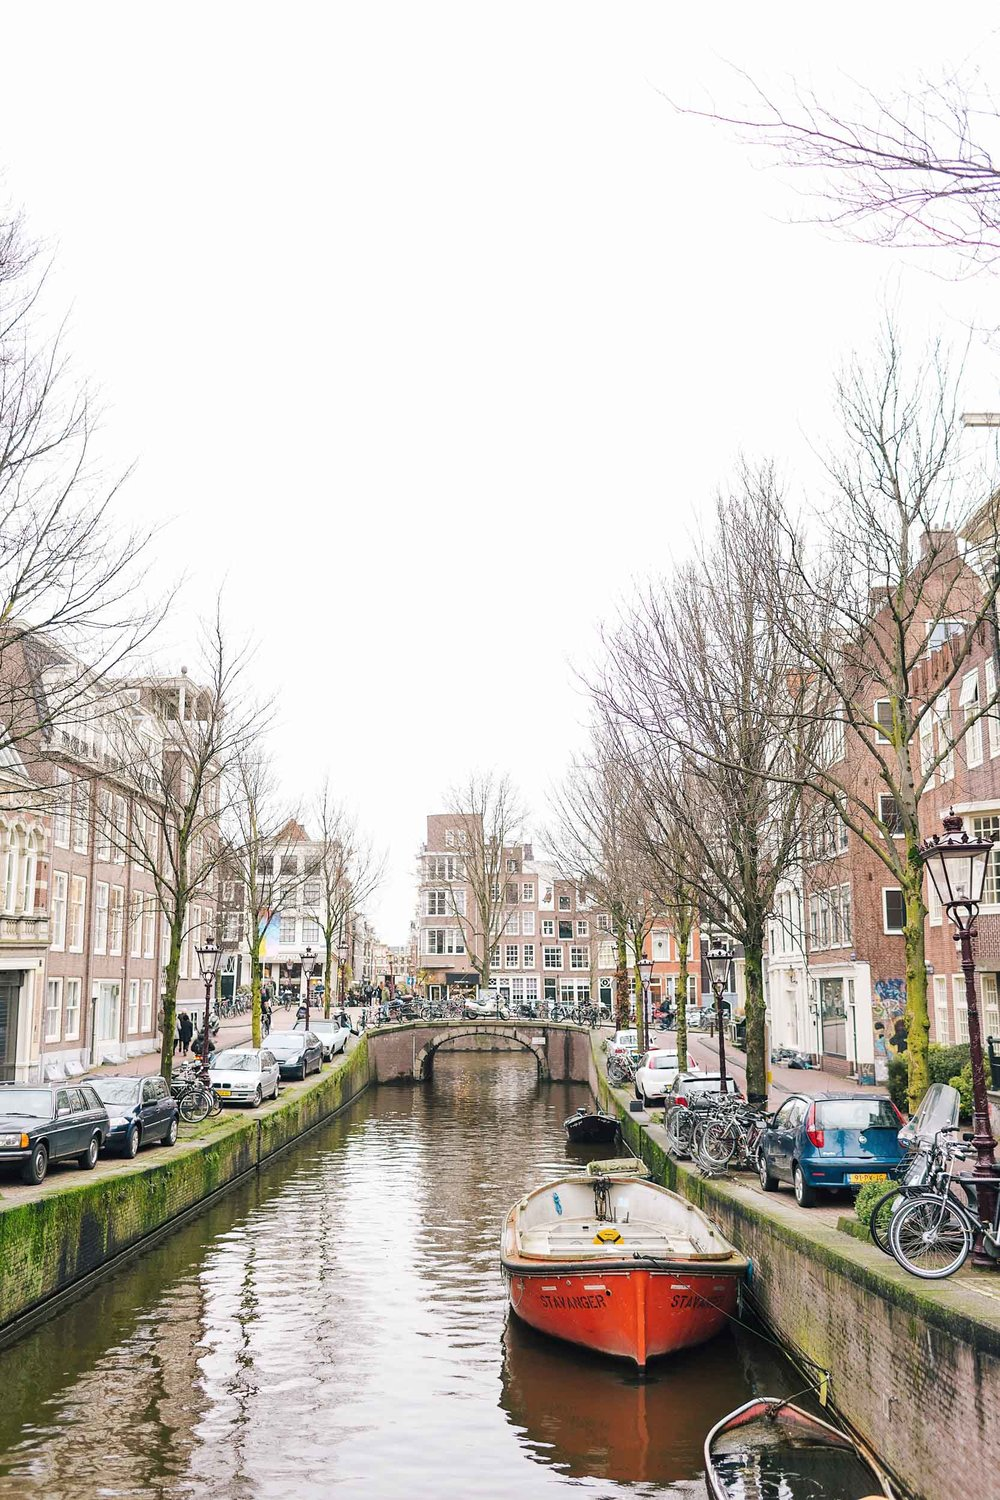 The best 2 days in Amsterdam itinerary includes a bike tour